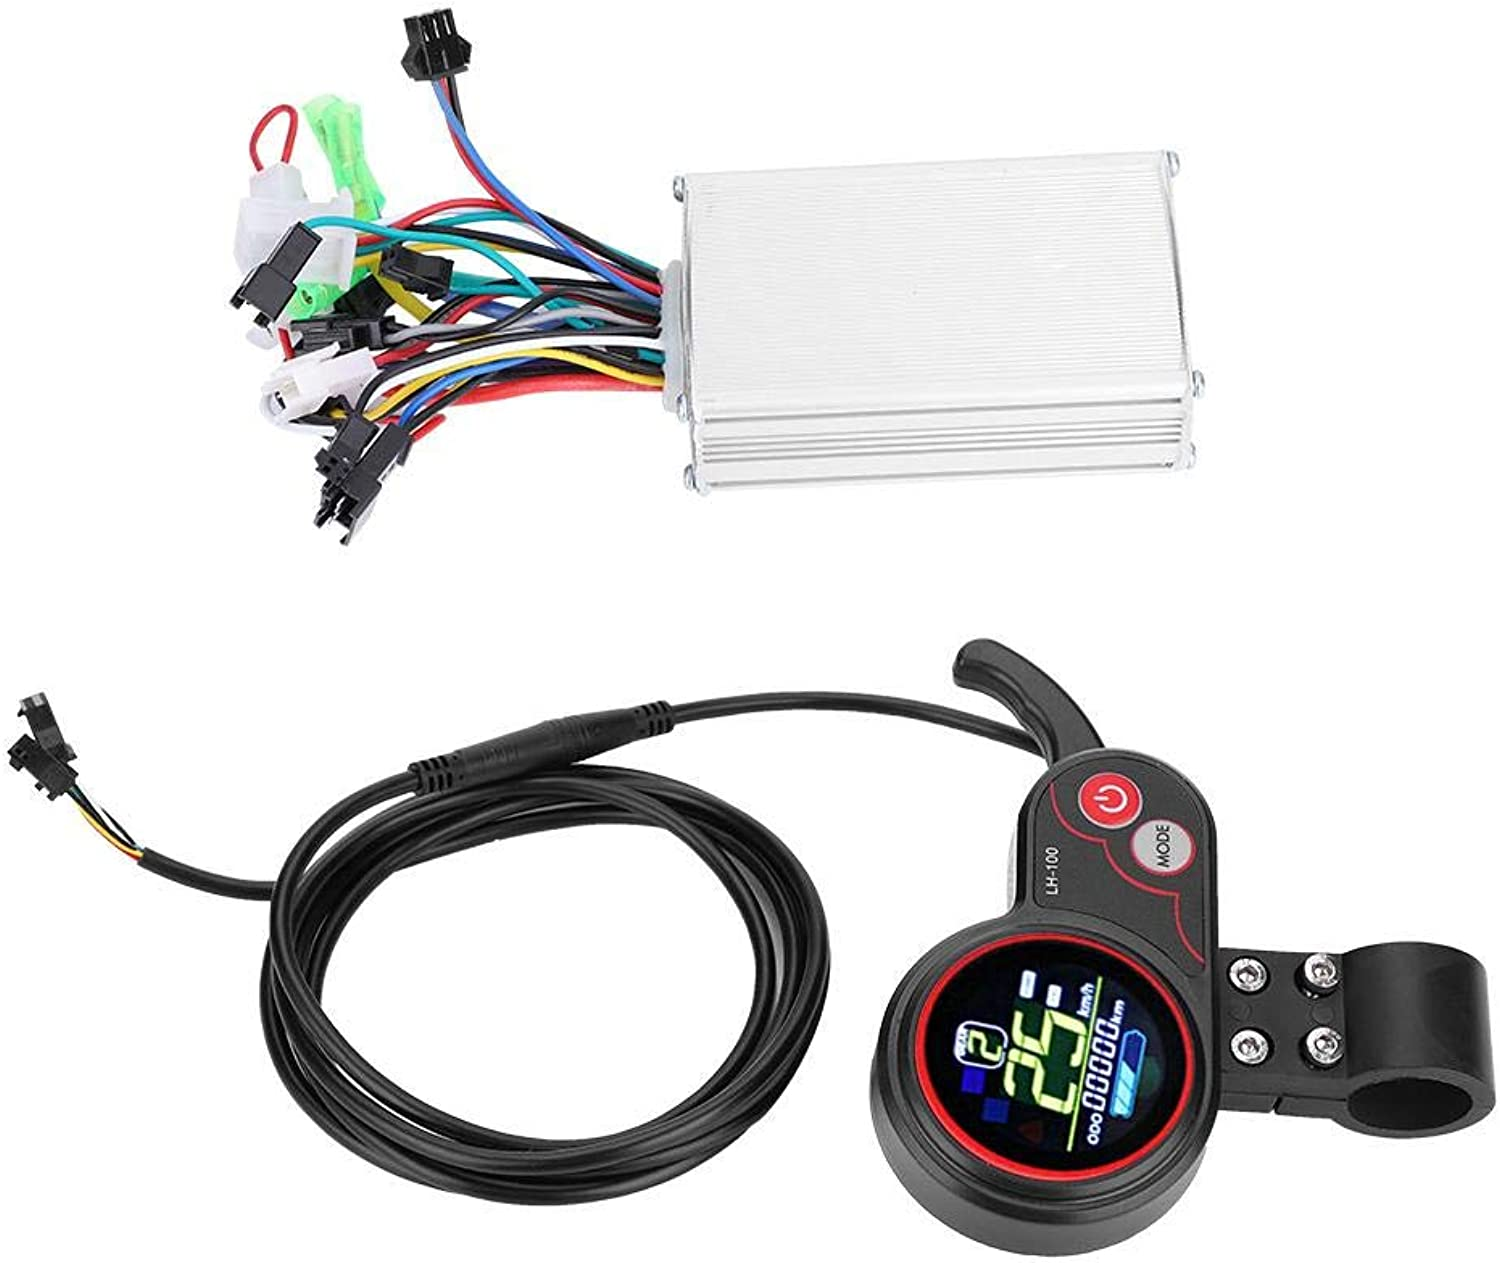 Alomejor Controller LCD Display 24V 36V 48V 60V 250W 350W Speed Controller with Waterproof LCD Display Panel for Electric Bike Scooter